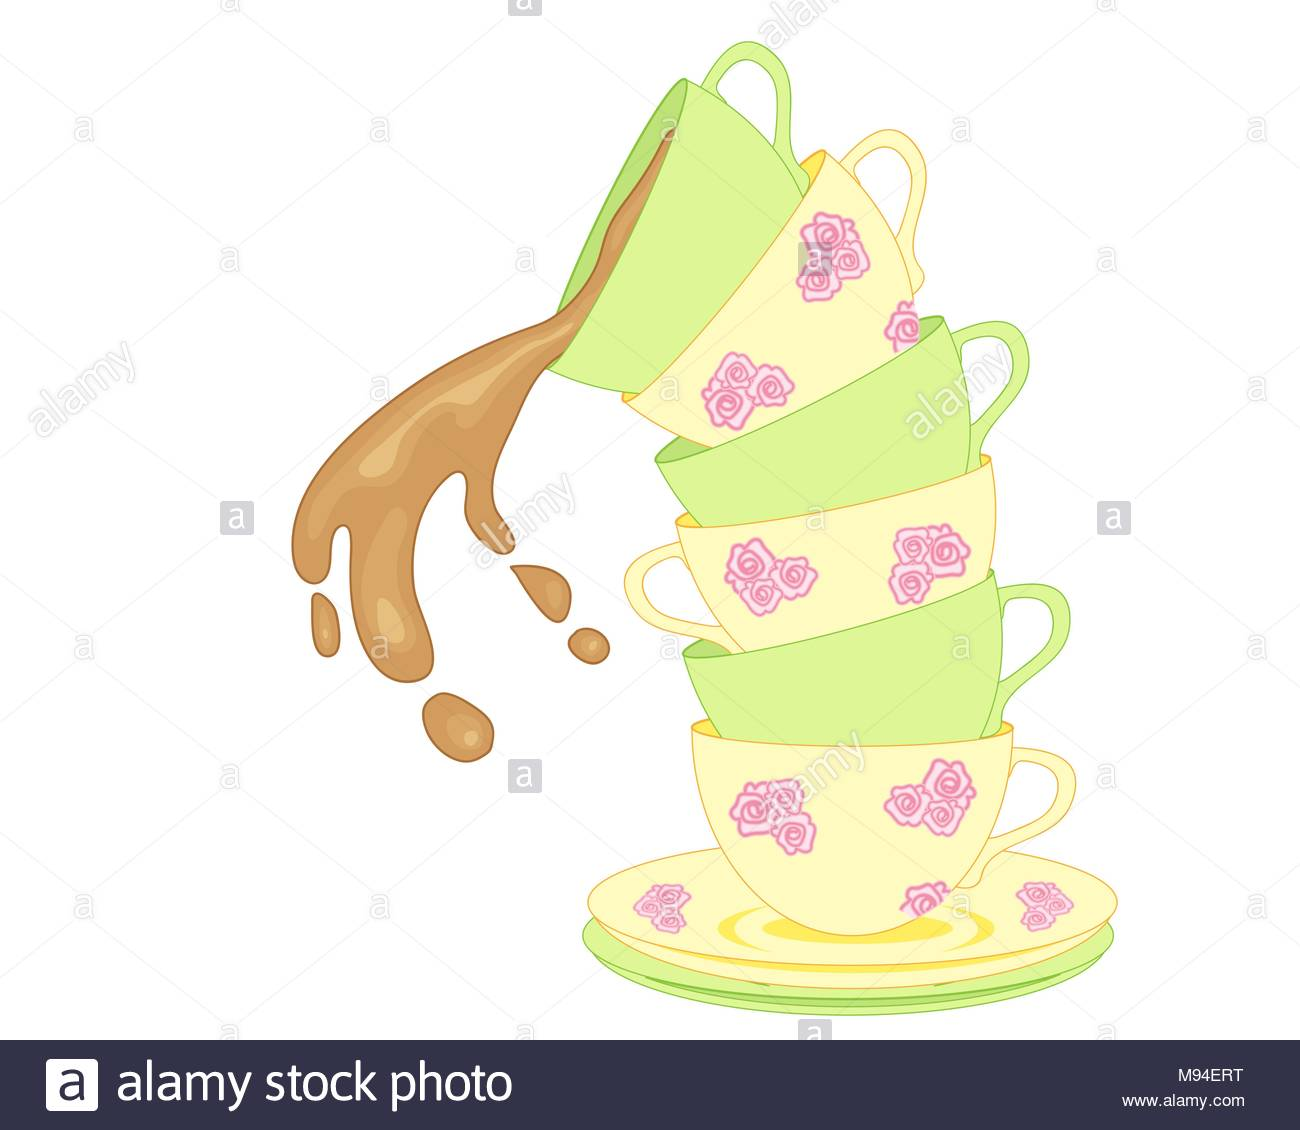 an illustration of a stack of fancy tea cups tumbling over with 1300x1130